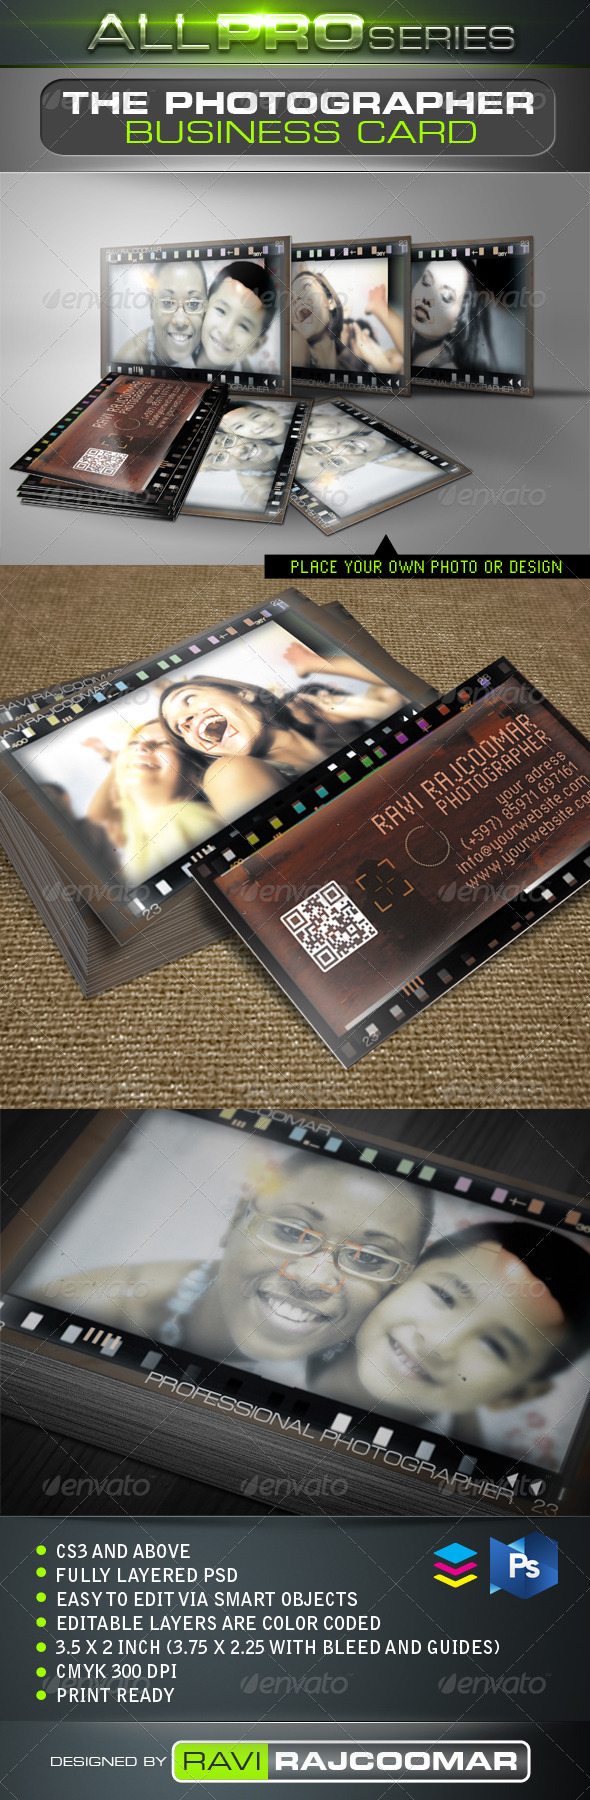 The Photographer Business Card - Creative Business Cards